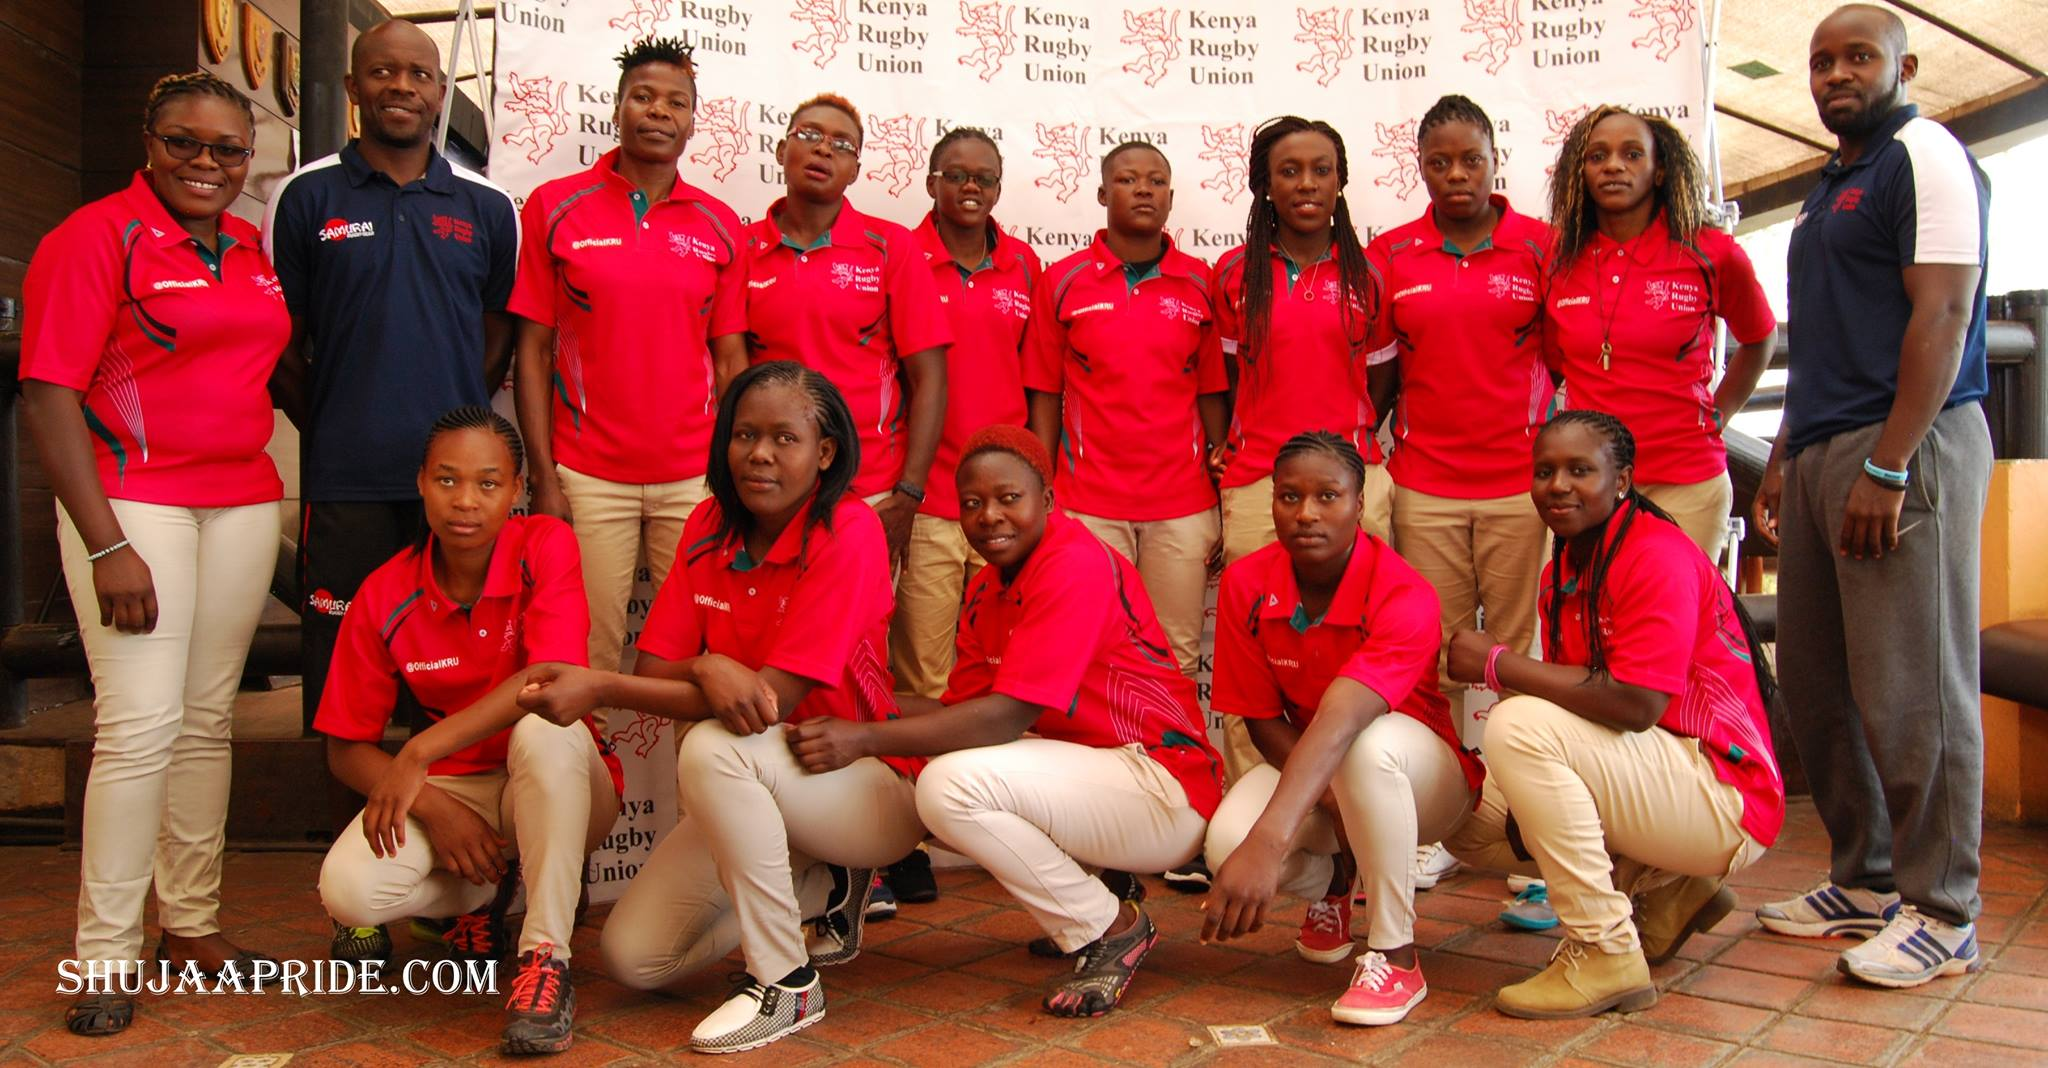 Applicants for Kenya Lioness Head coach, Team Manager, S&C and Pysio position